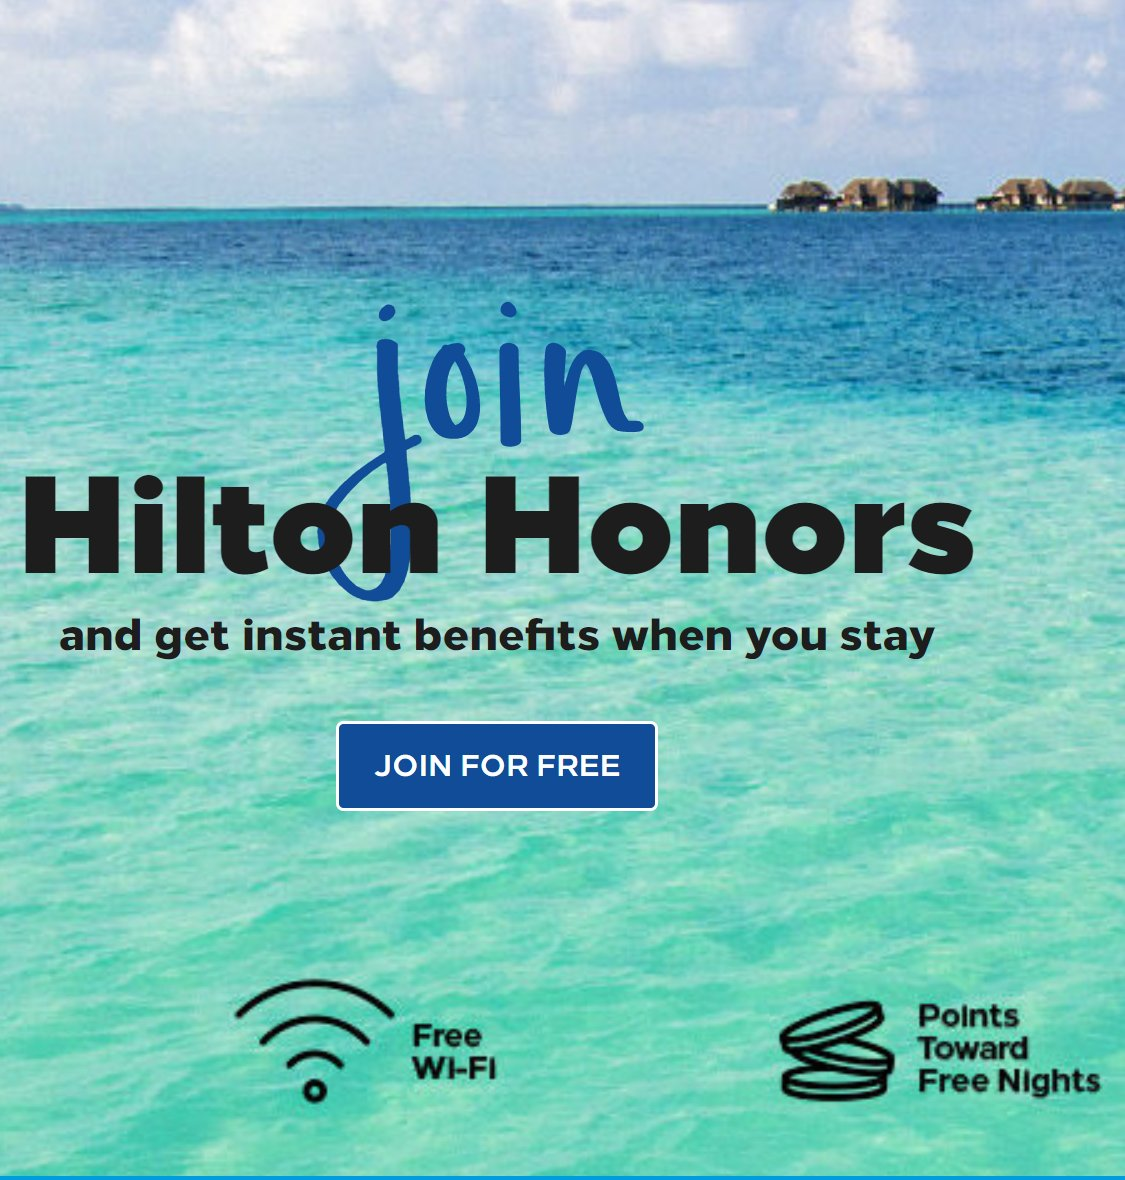 Hilton Honors Loyalty Club